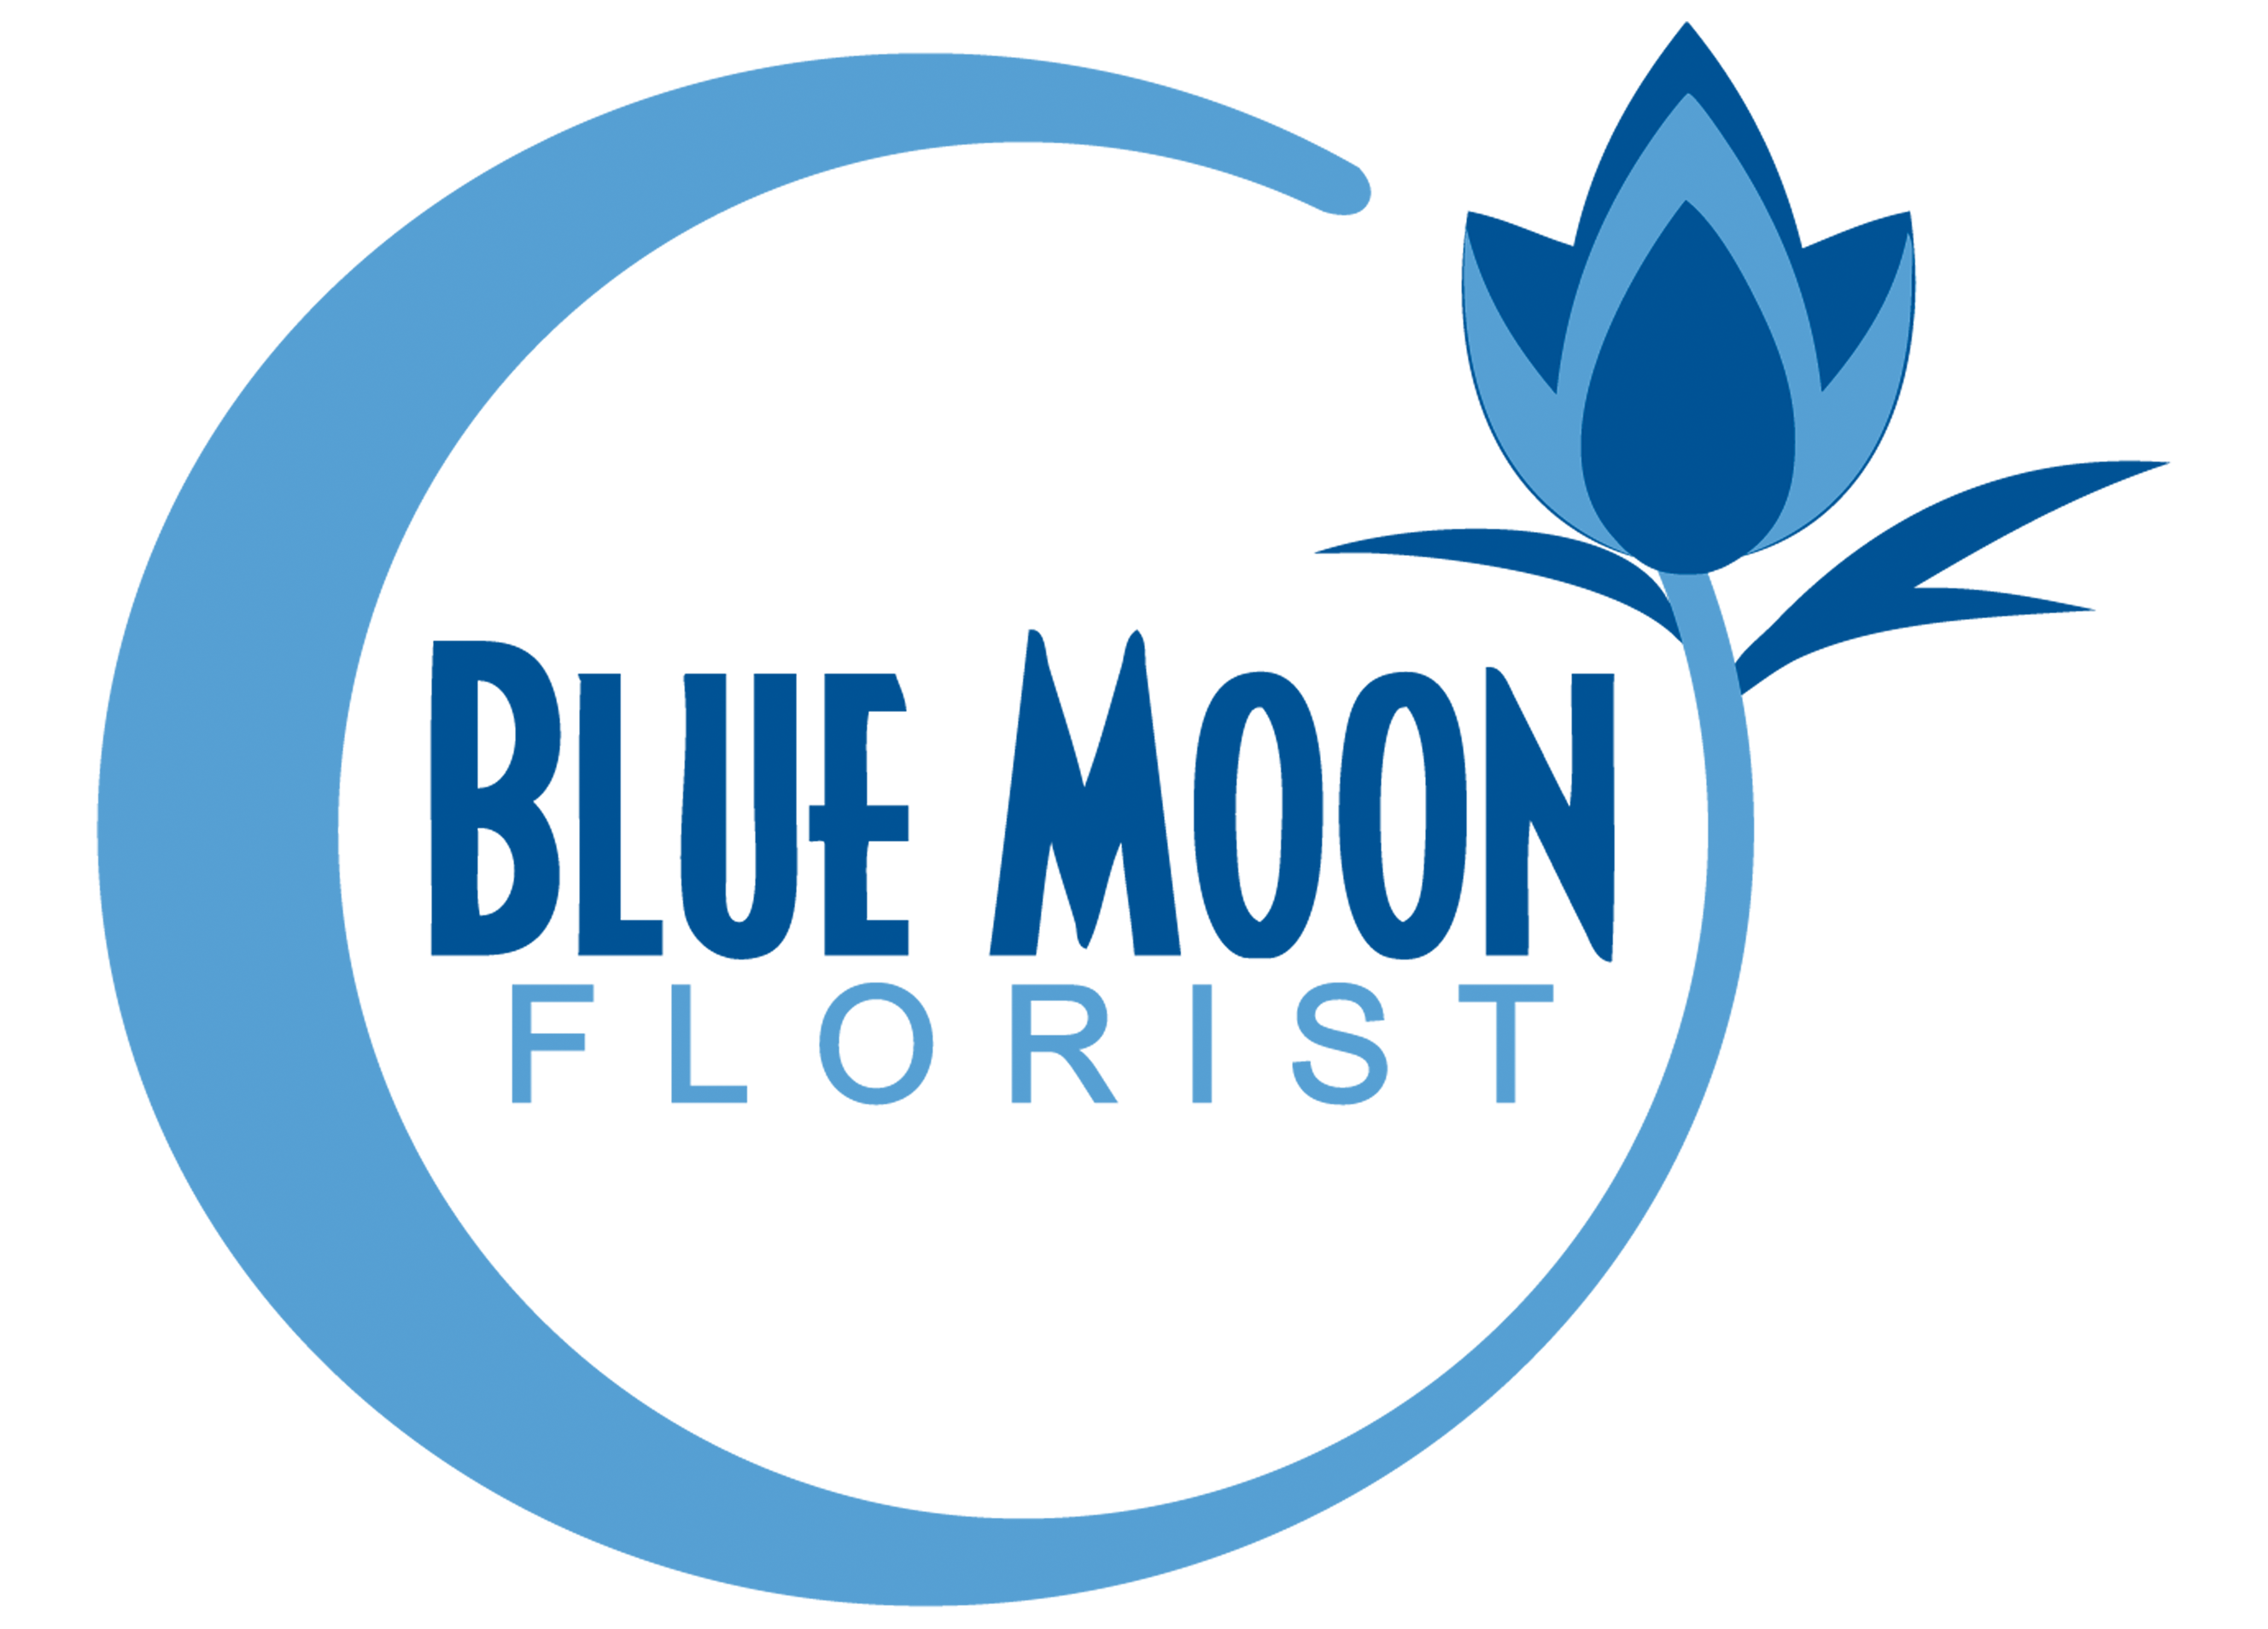 Blue moon logo png. About us florist downingtown